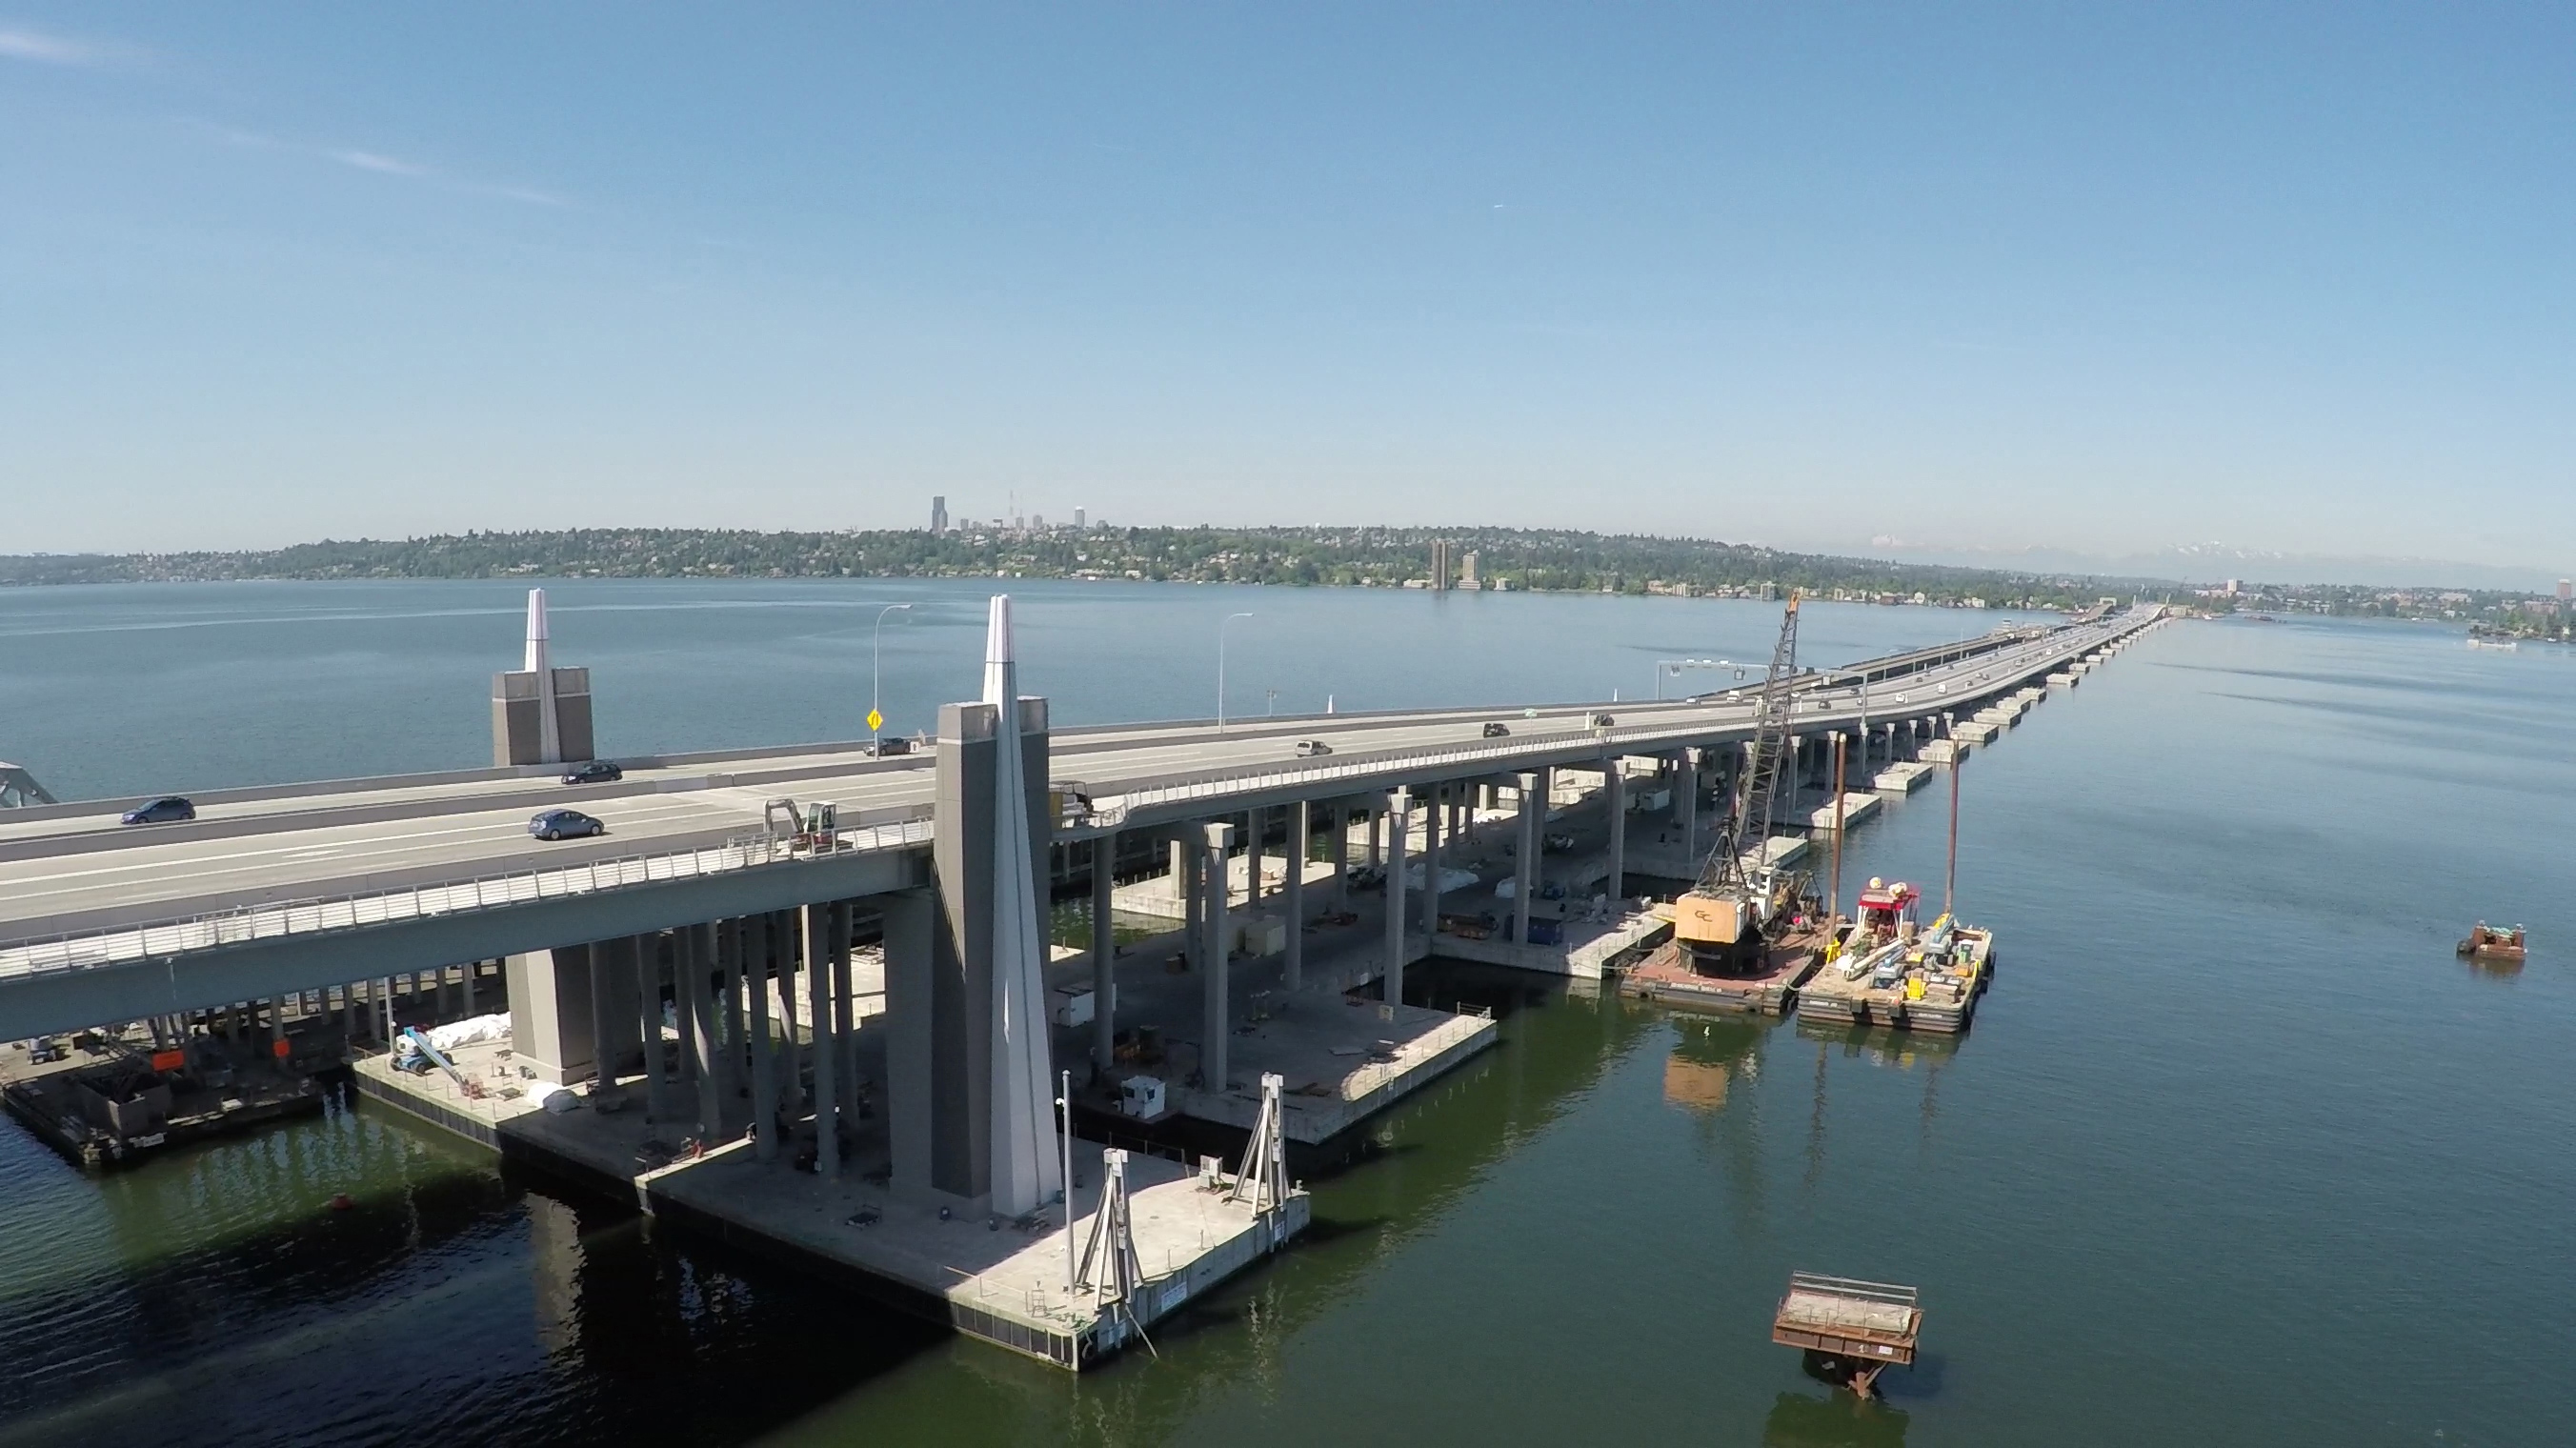 SR-520 Evergreen Point Floating Bridge and Landings Design-Build Project